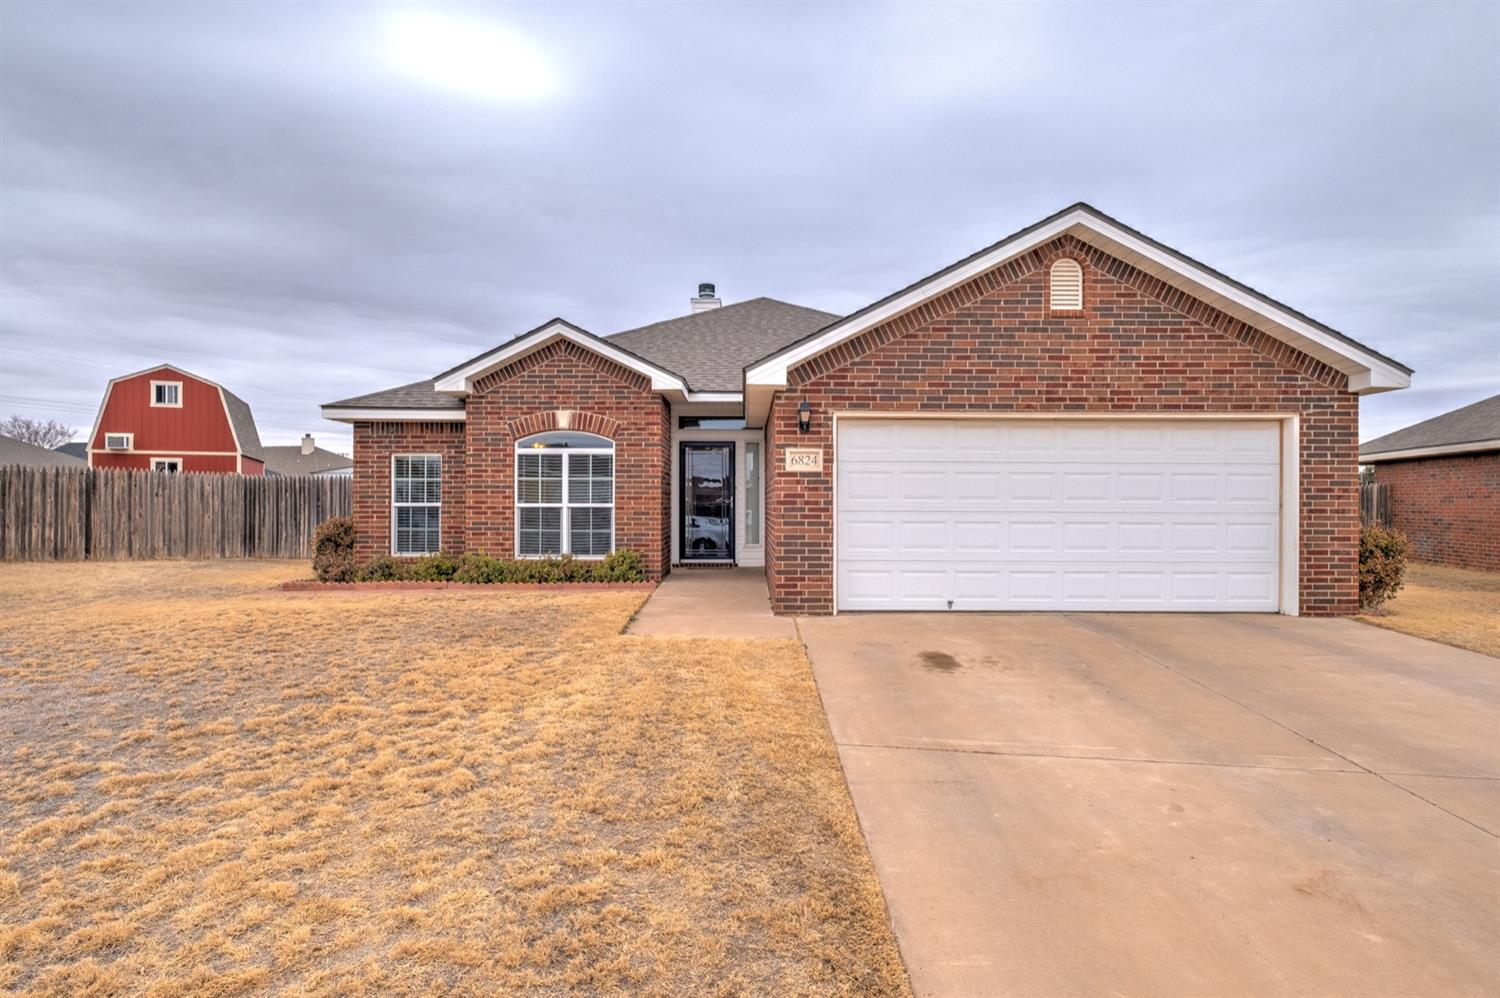 This is a Beautifully updated 3 Bedroom 2 bath home with beautiful neutral paint throughout.  It has updated floors a huge backyard and is on a quiet Cul-de-sac in Frenship ISD. New Roof and under 190K, don't miss this great home!!